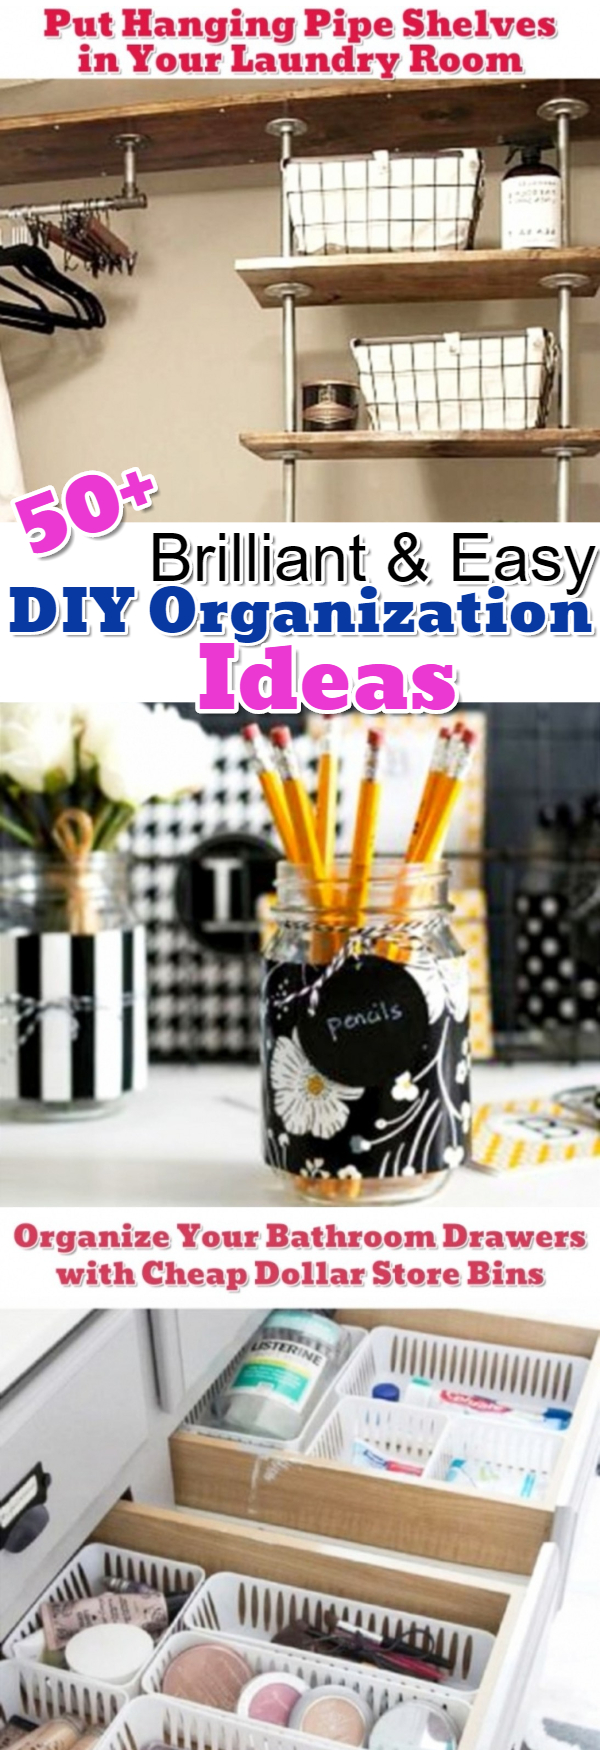 Some of the best getting organized help and DIY ideas I've seen on Pinterest